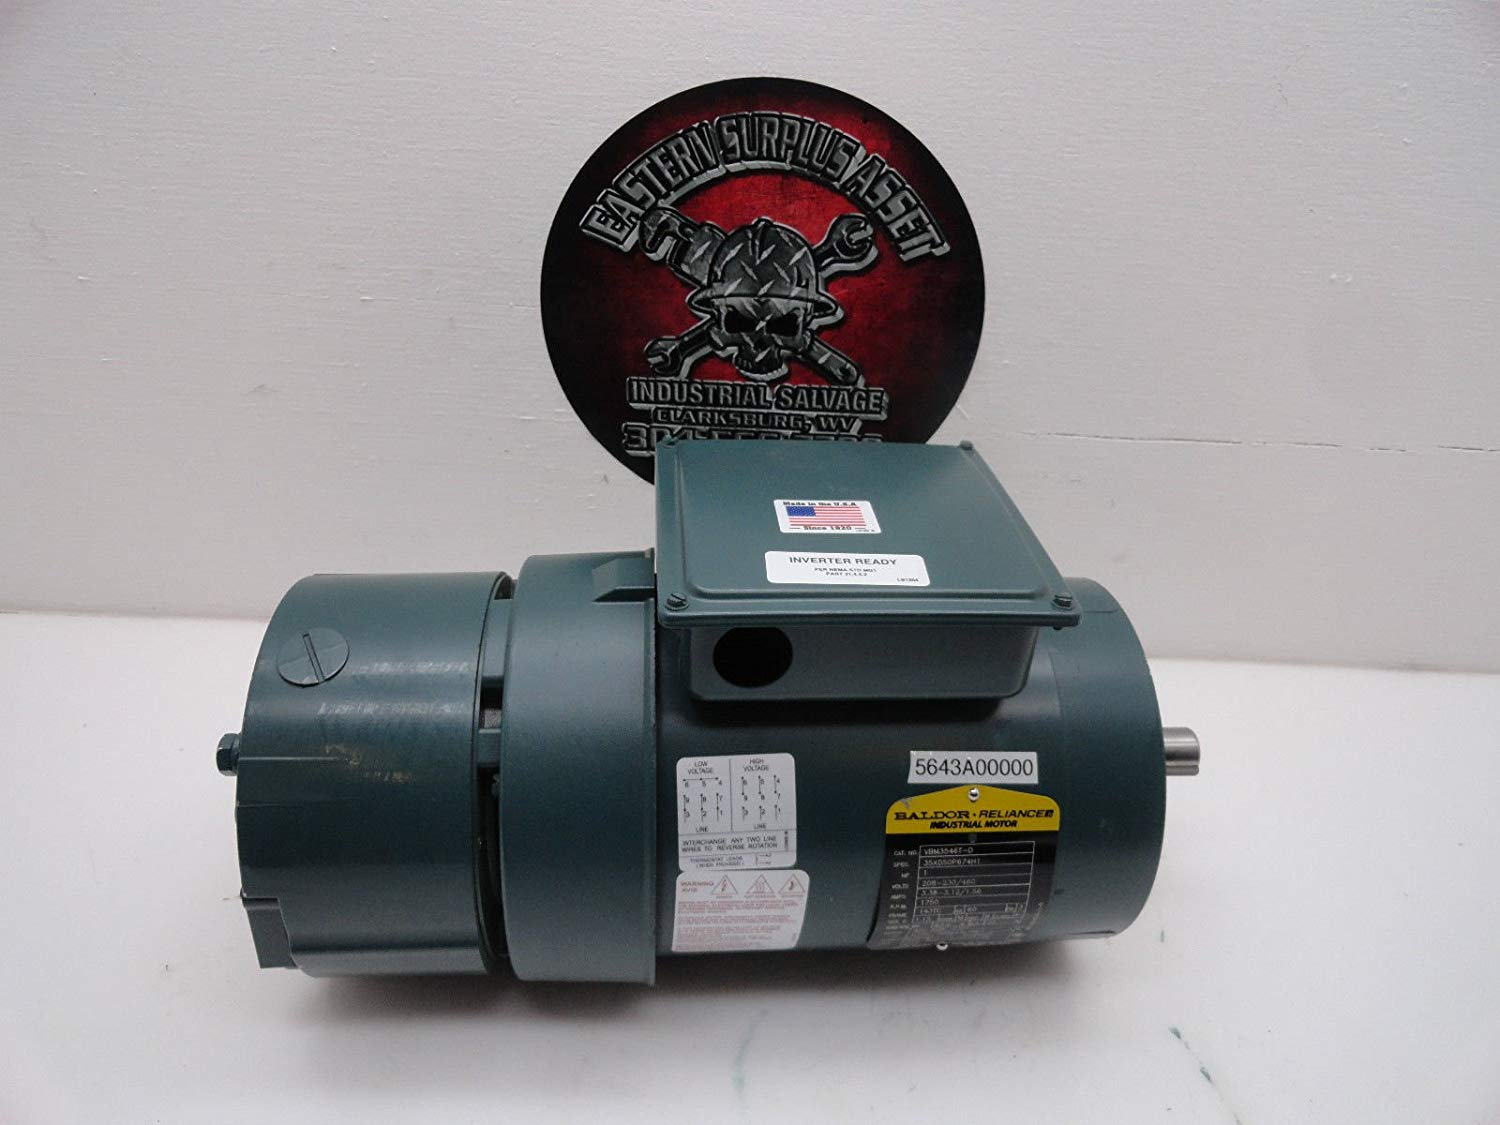 get quotations � dodge baldor vbm3546t-d 1hp 230/460 electric motor w/ dbsc  46bk brake